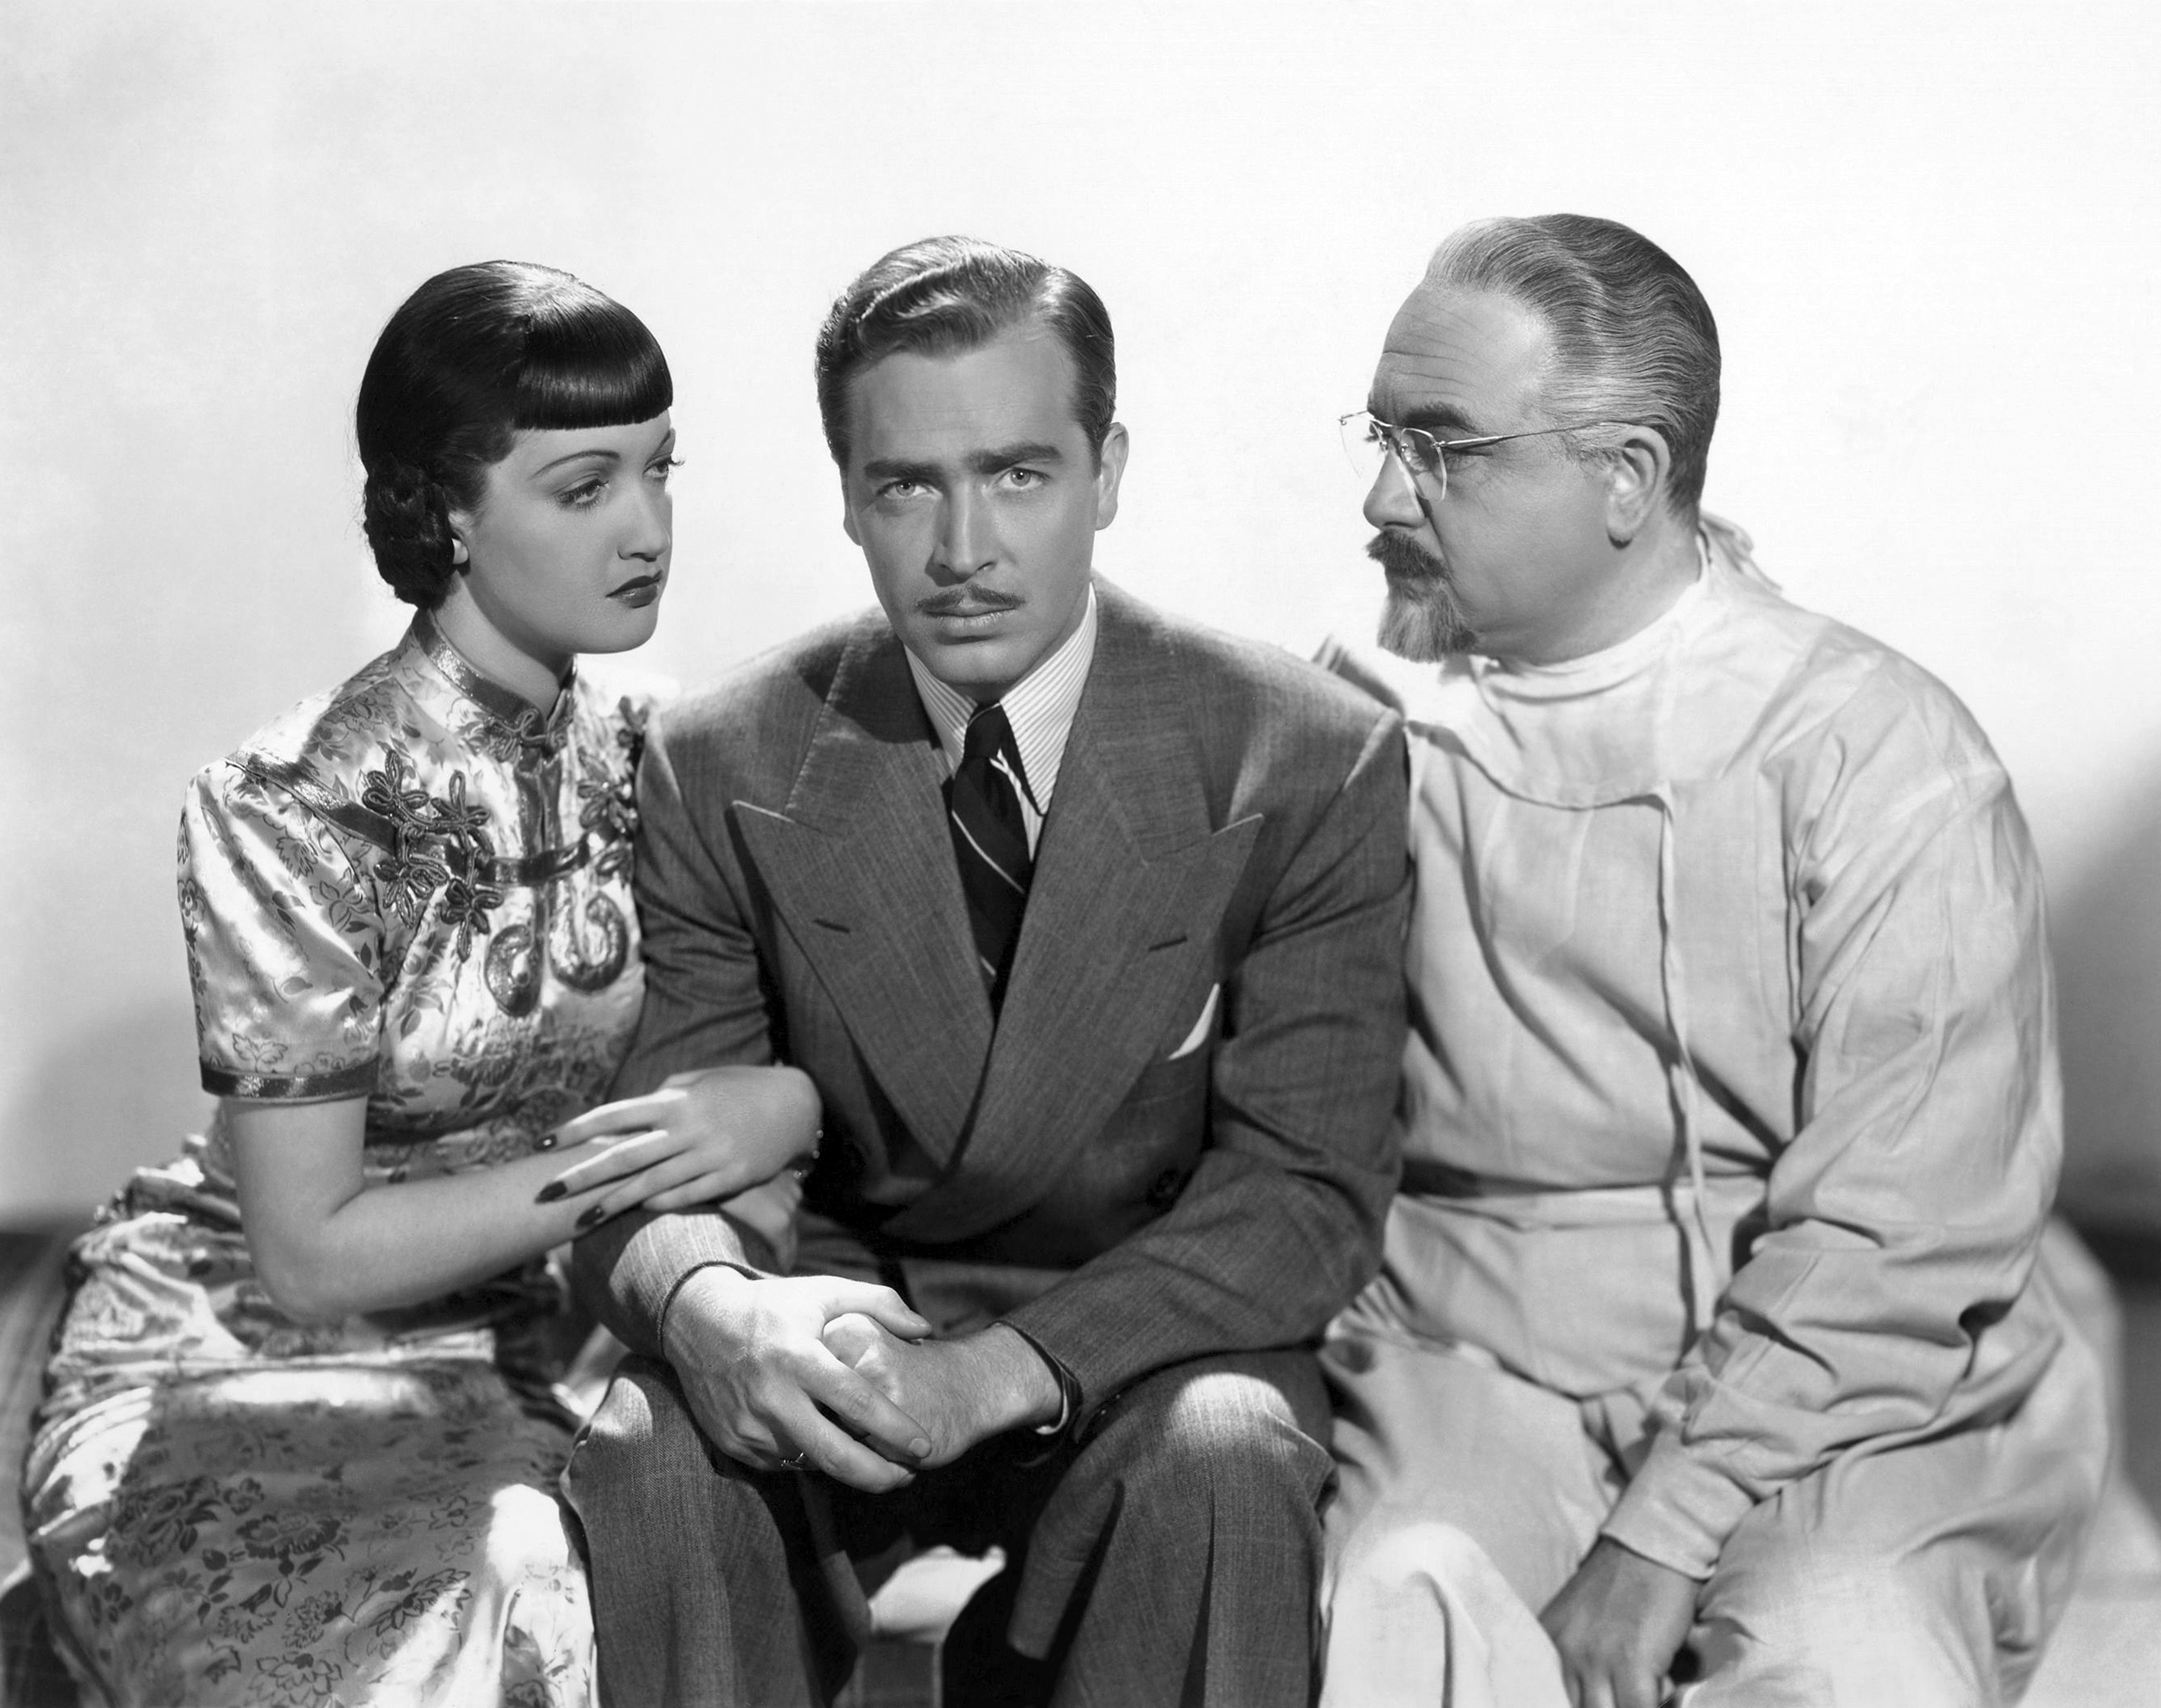 Dorothy Lamour with (L to R) Dorothy Lamour, John Howard, Akim Tamiroff